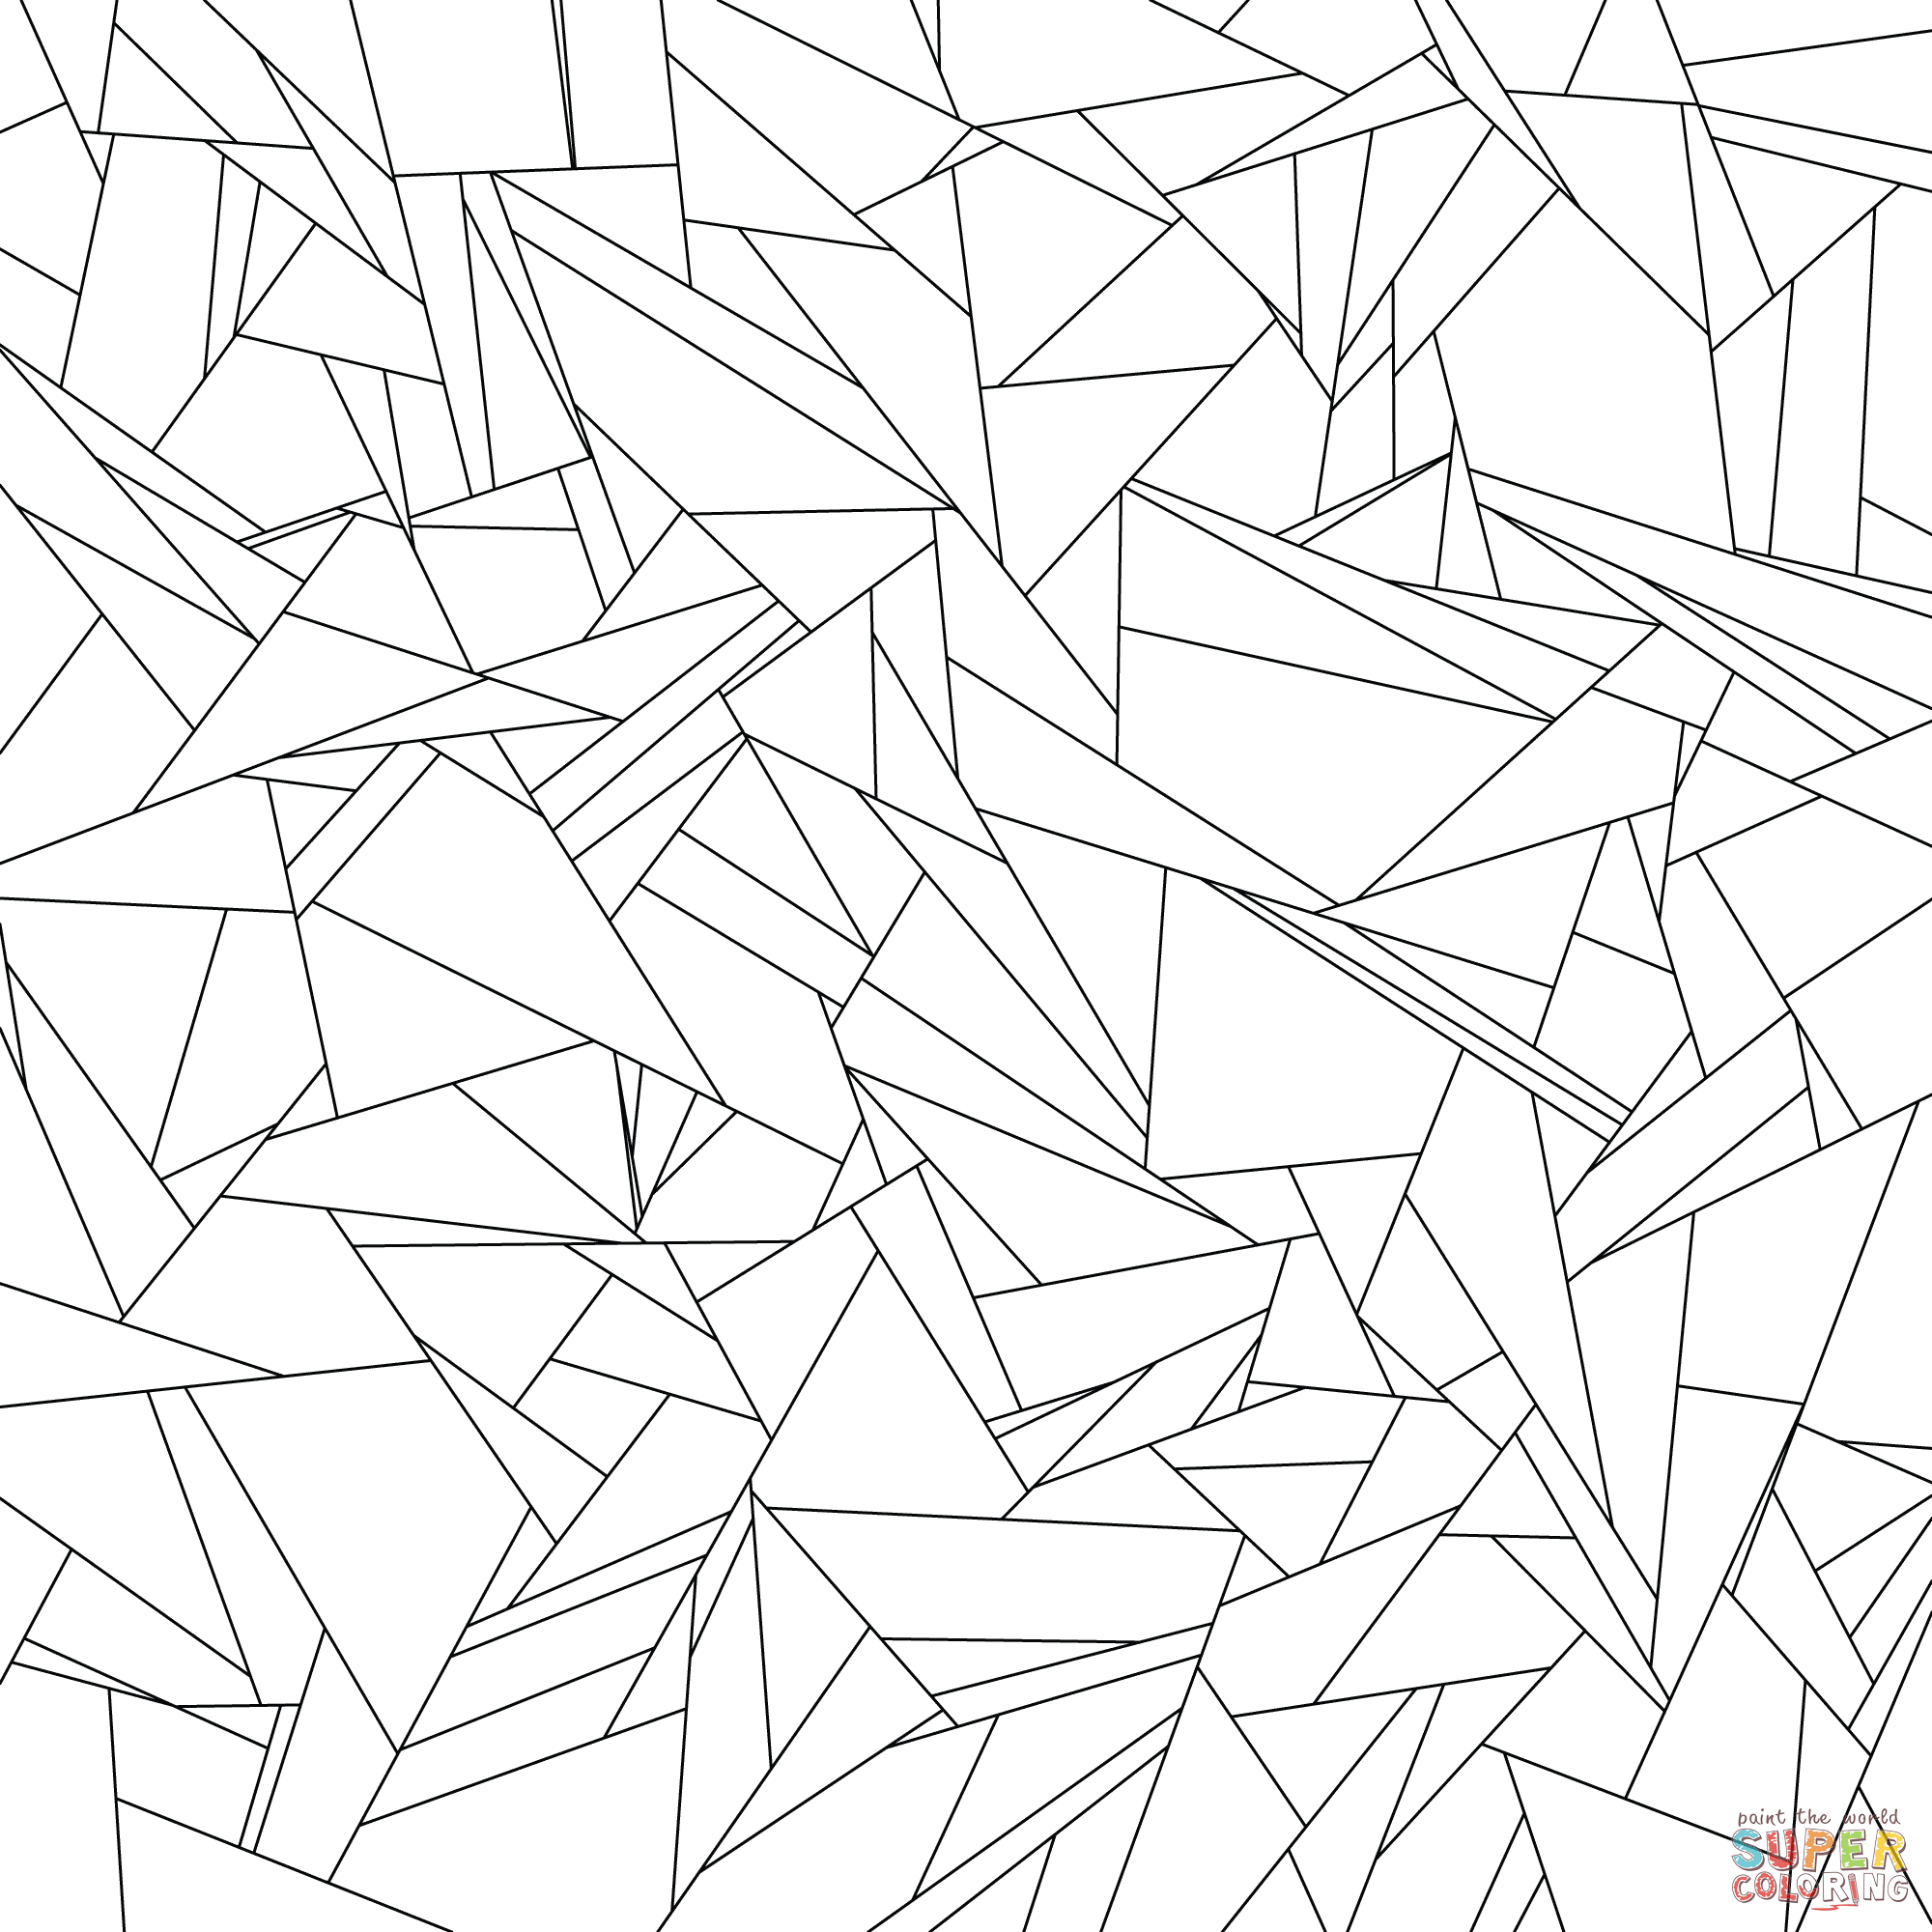 Gilbert Tessellation Coloring Page From Tessellations Category Select From 27278 Printable Abstract Coloring Pages Pattern Coloring Pages Free Coloring Pages